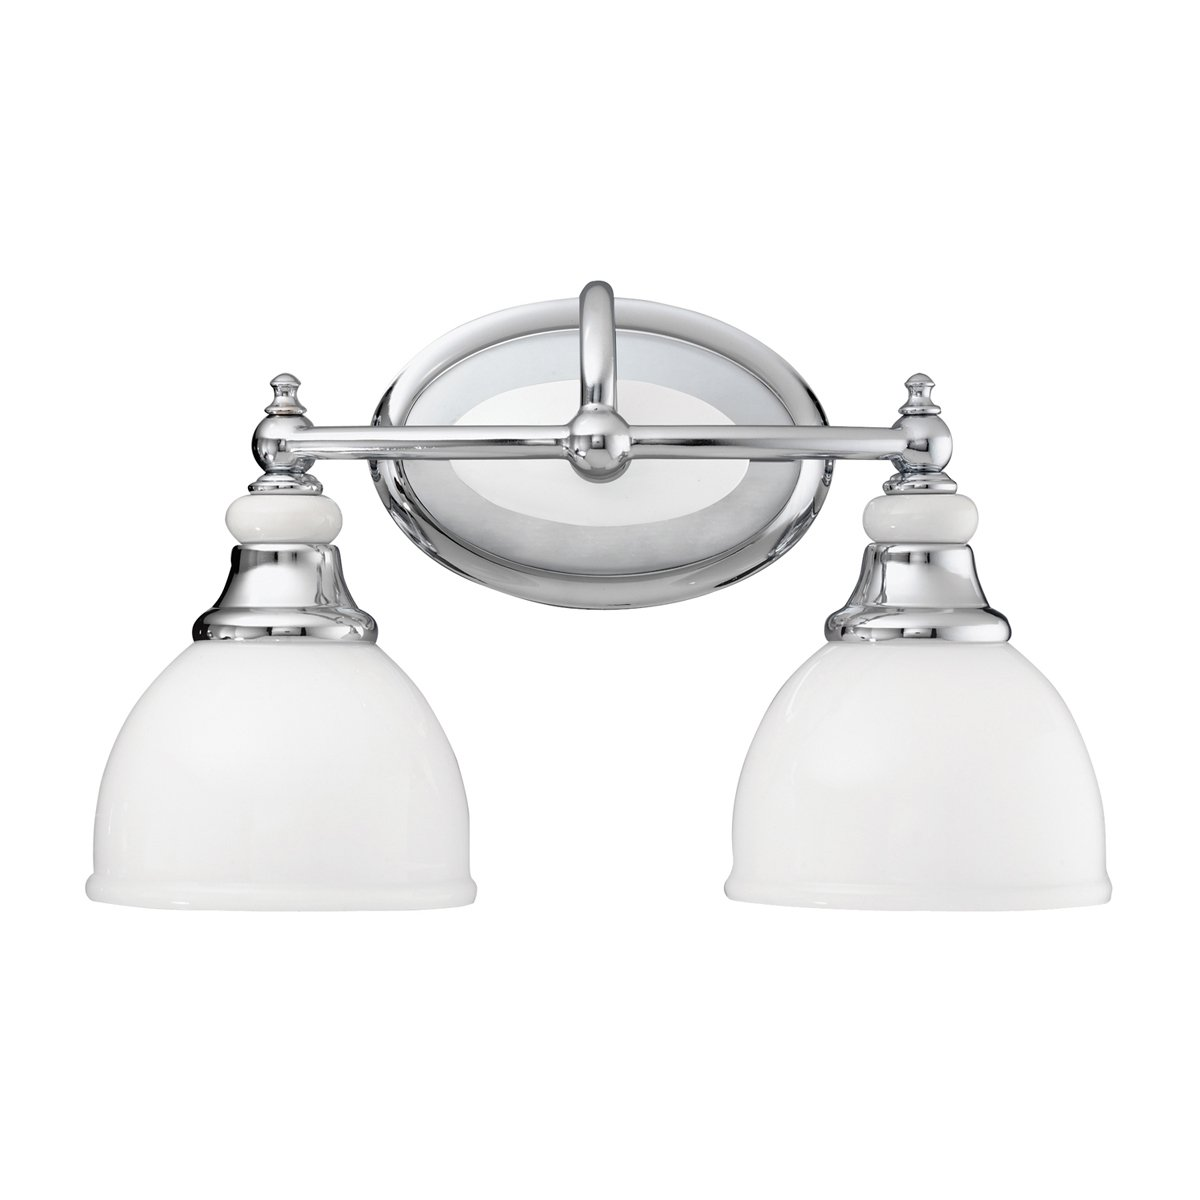 lights brushed fixture your amazon fixtures makeup inspiration led bathroom home depot nickel throughout vanity amusing house light applied to lighting